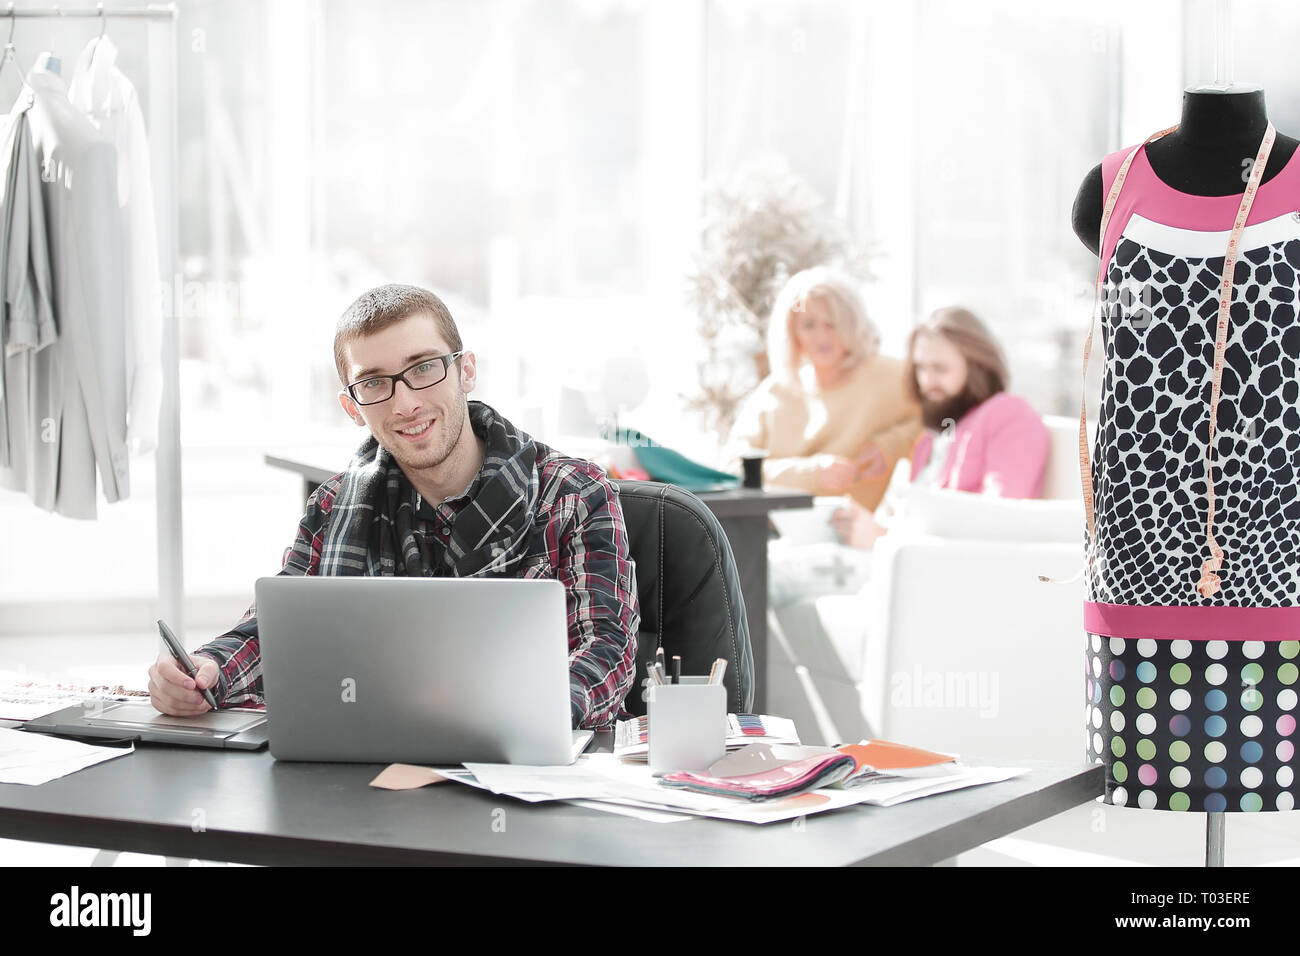 designer using laptop and graphics tablet to create sketches of new clothes - Stock Image